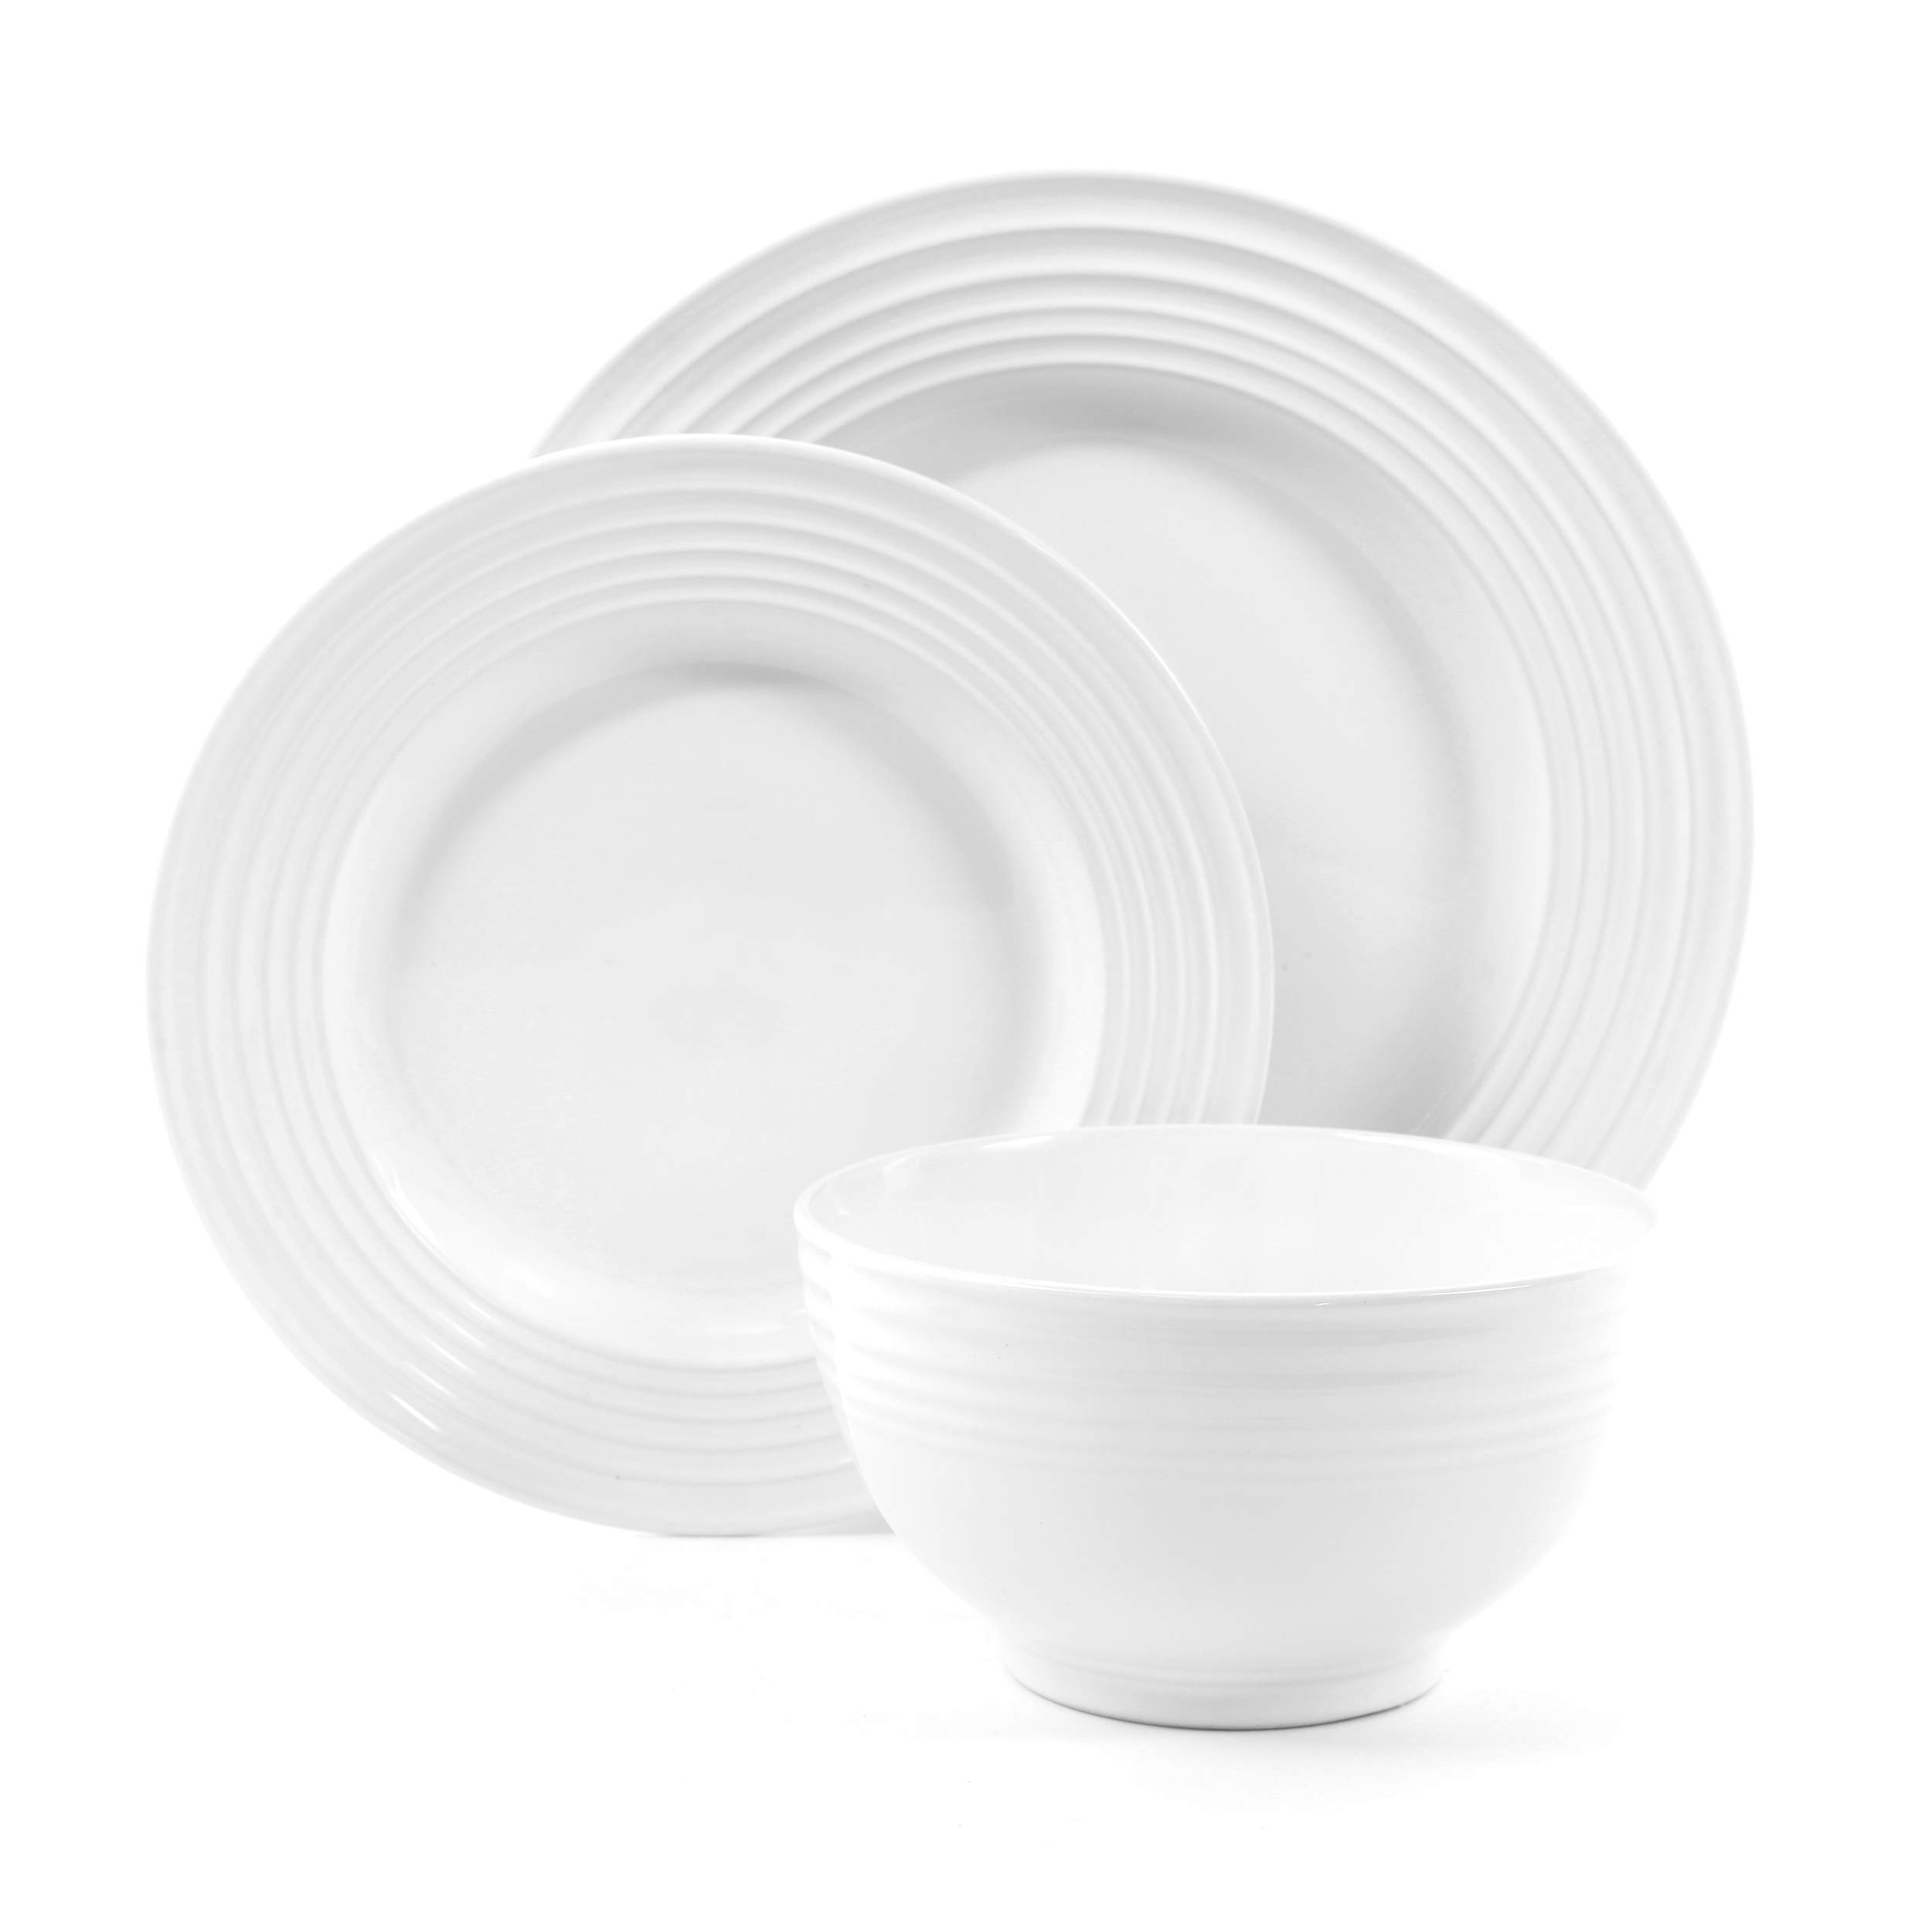 Gibson Home 12 Piece Plaza Cafe Round Dinnerware Set with Embossed Stoneware, White by Gibson Home (Image #2)